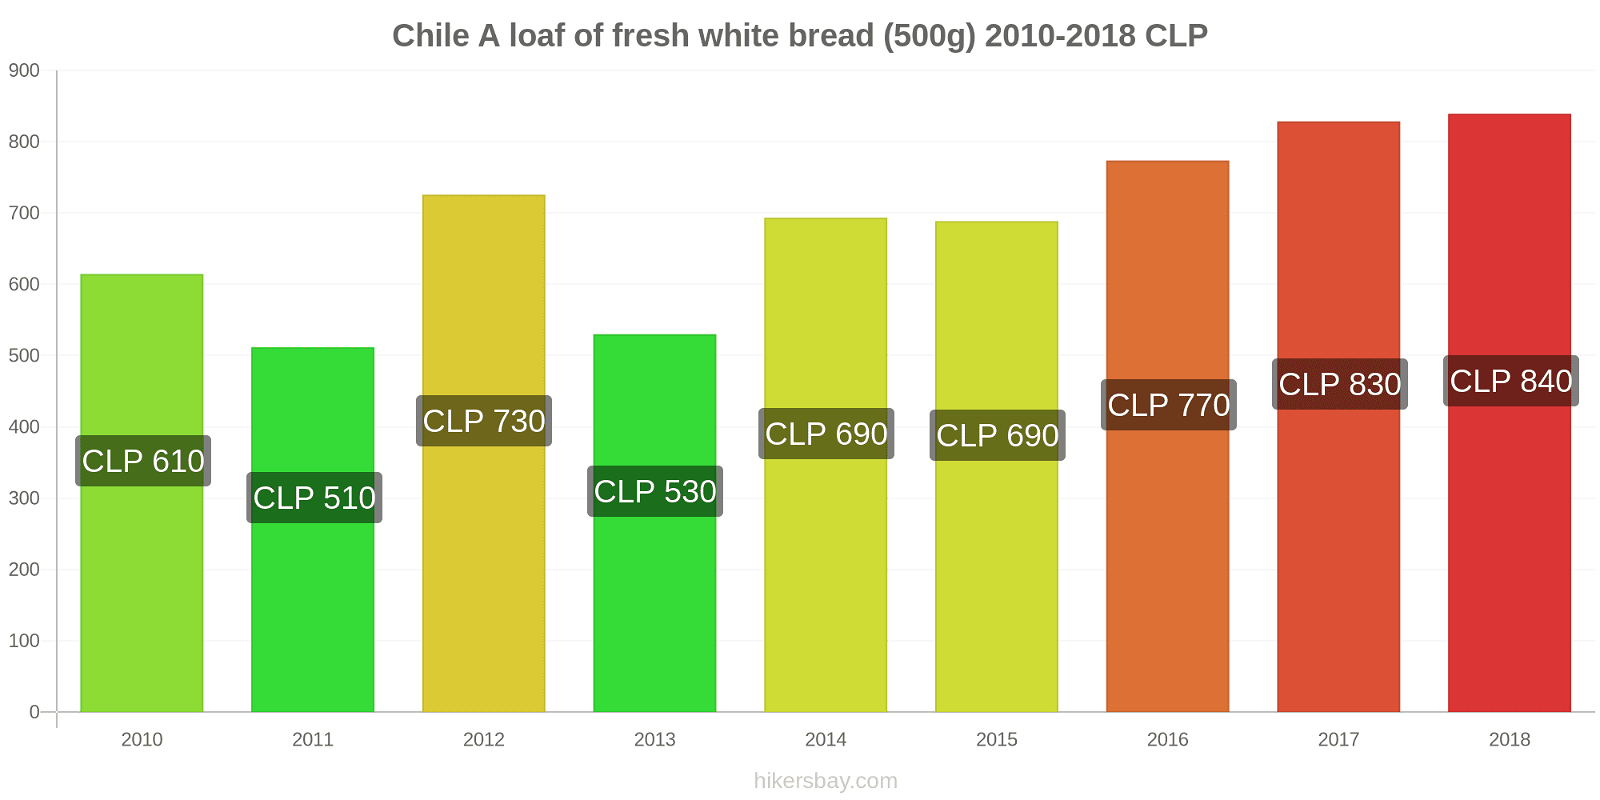 Chile price changes A loaf of fresh white bread (500g) hikersbay.com